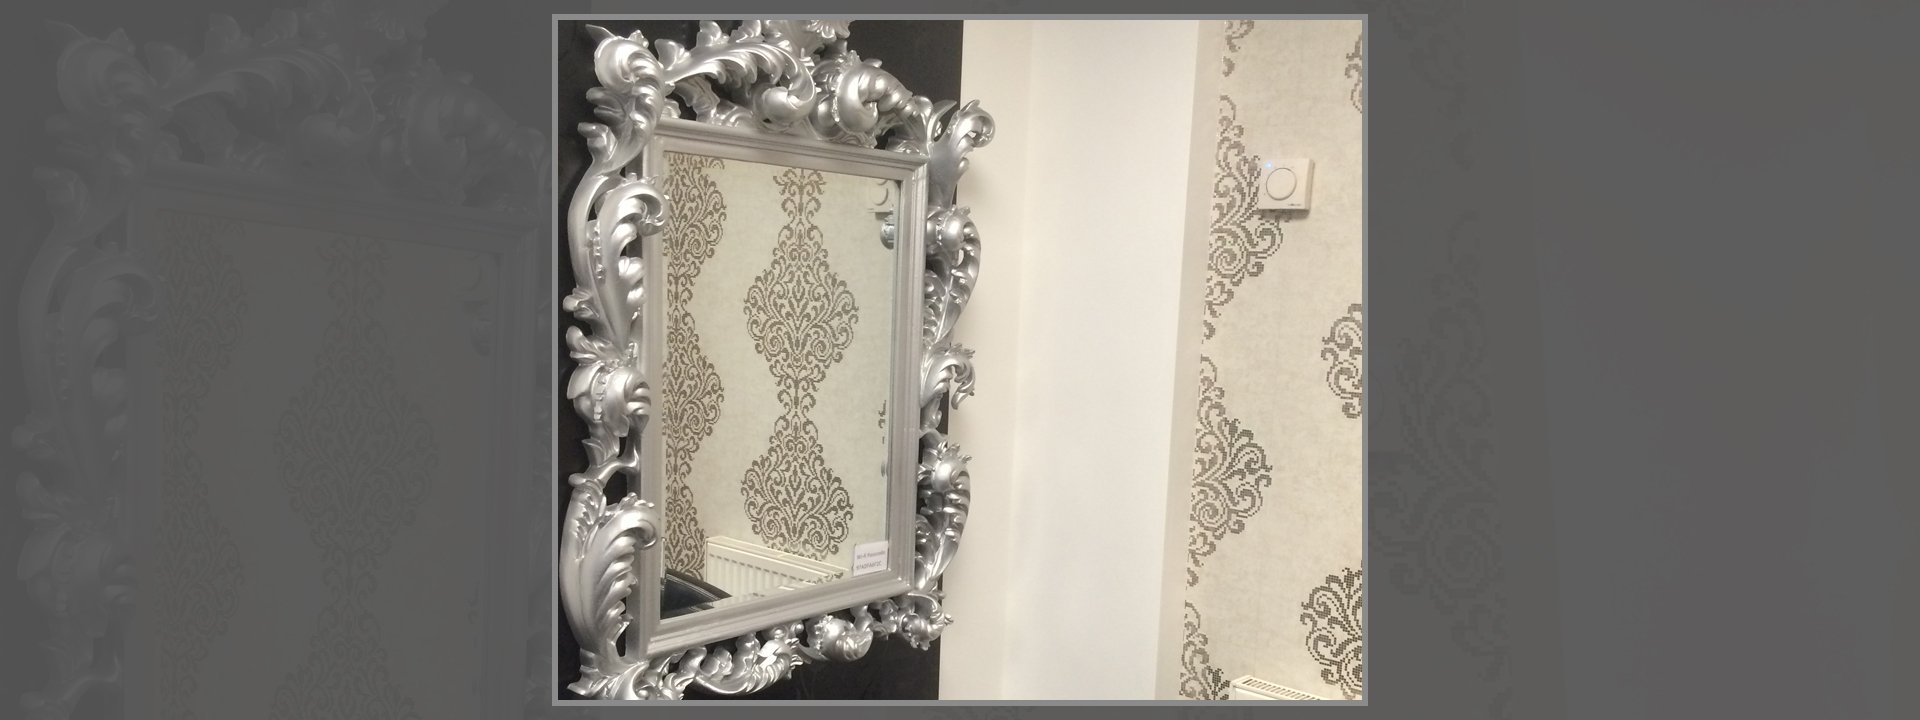 Cream patterned wall reflected in a mirror with ornate silver frame